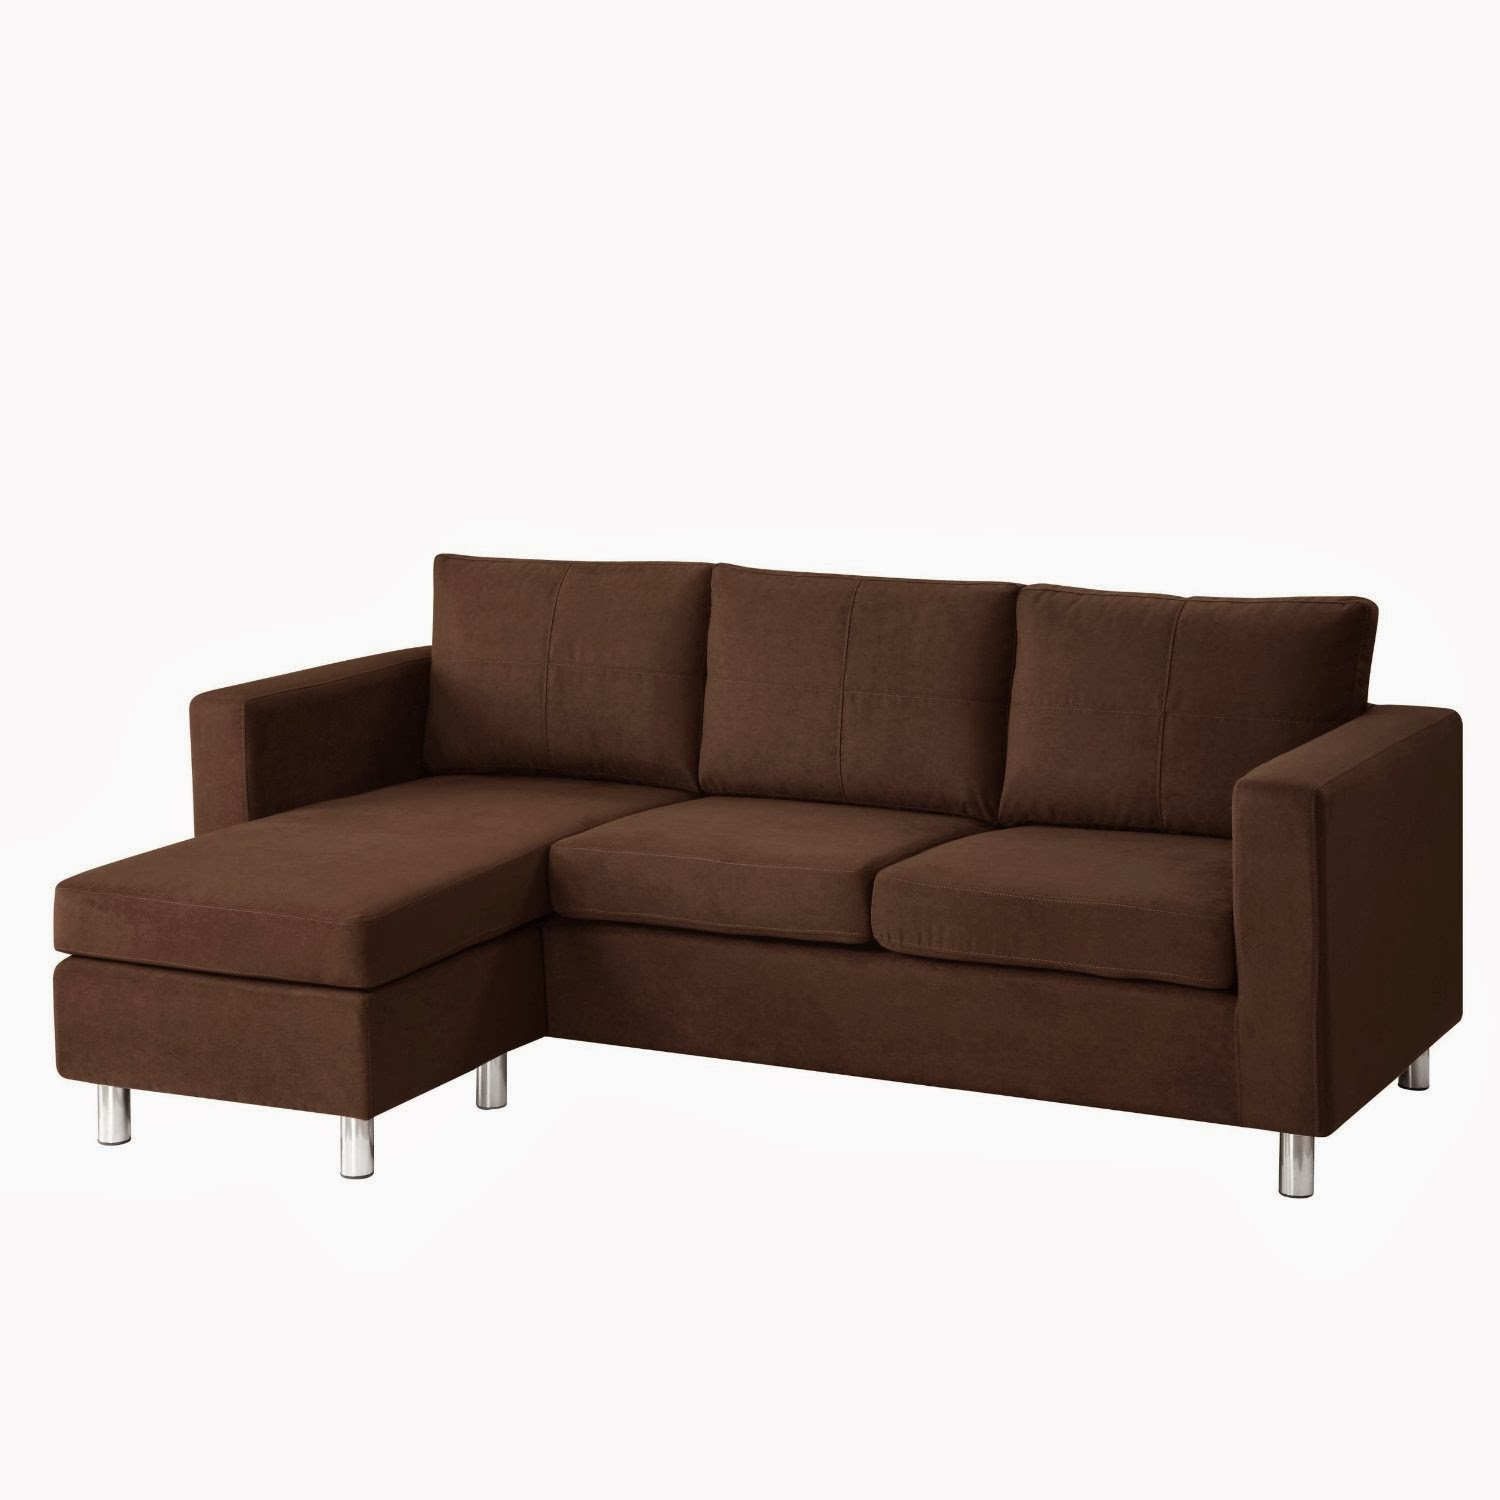 Small Sectional Sofas Reviews: Small Sectional Sofa With Chaise